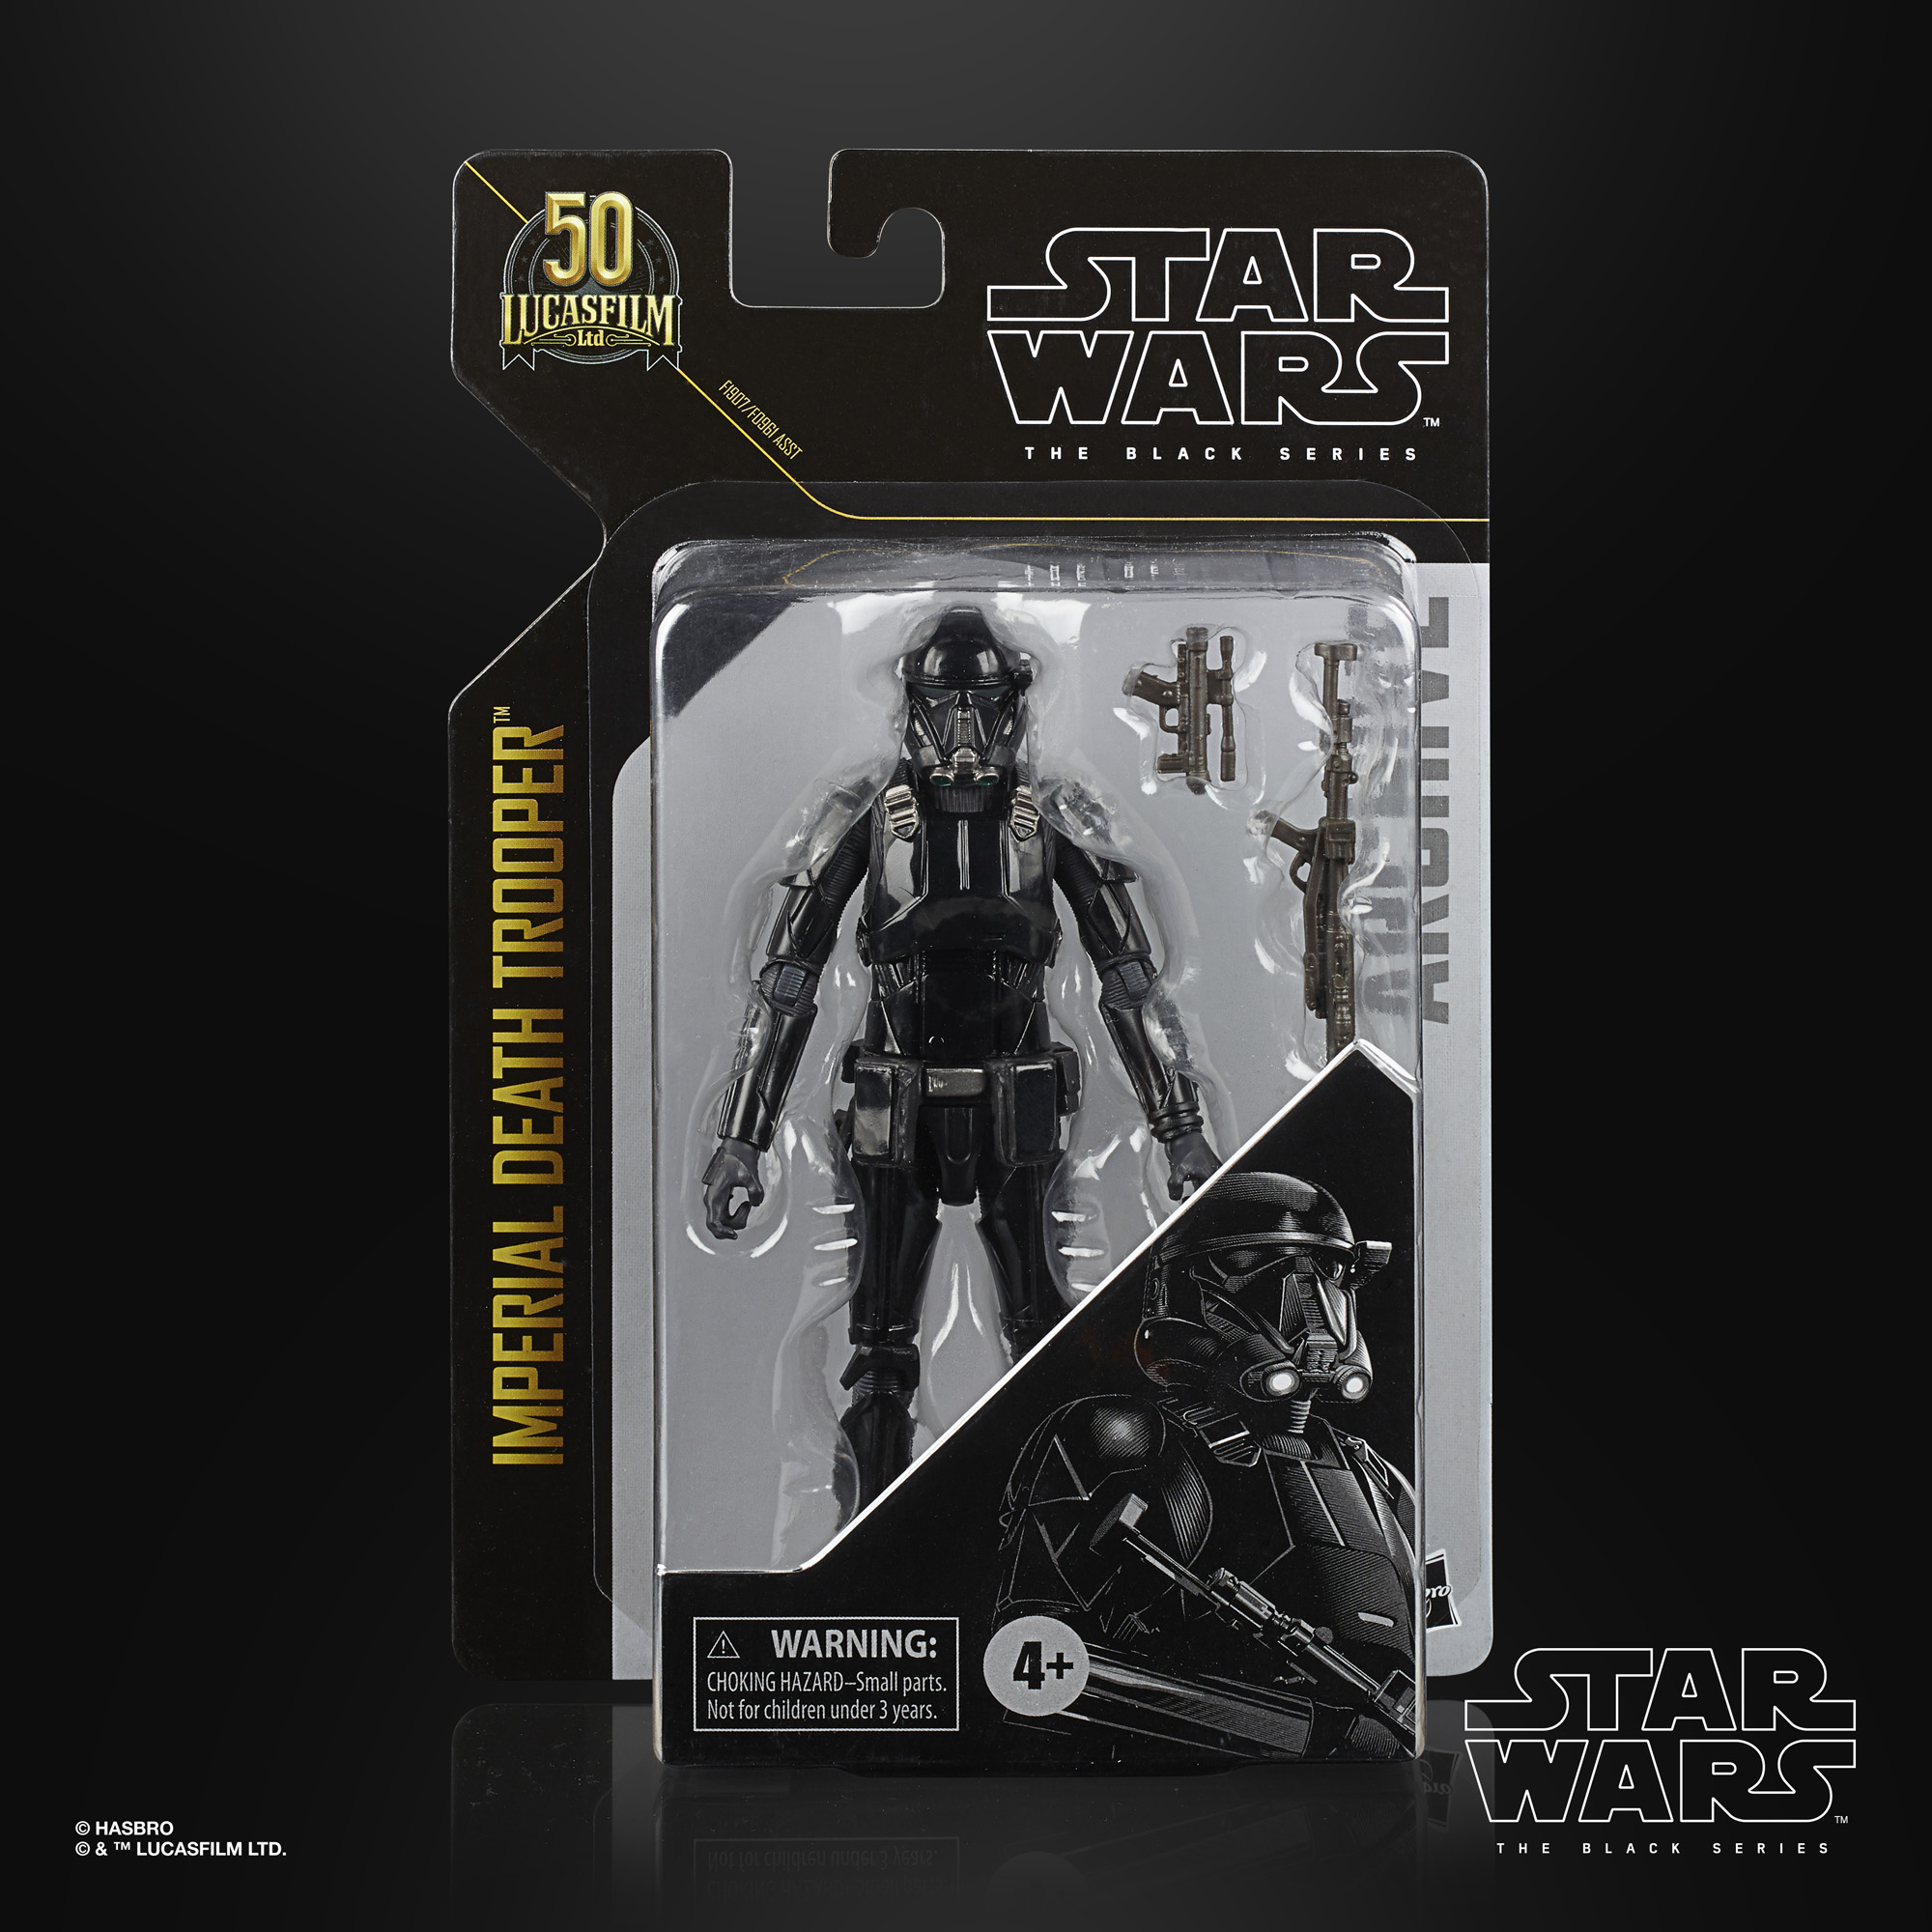 STAR WARS THE BLACK SERIES ARCHIVE 6-INCH IMPERIAL DEATH TROOPER Figure – in pck(1)